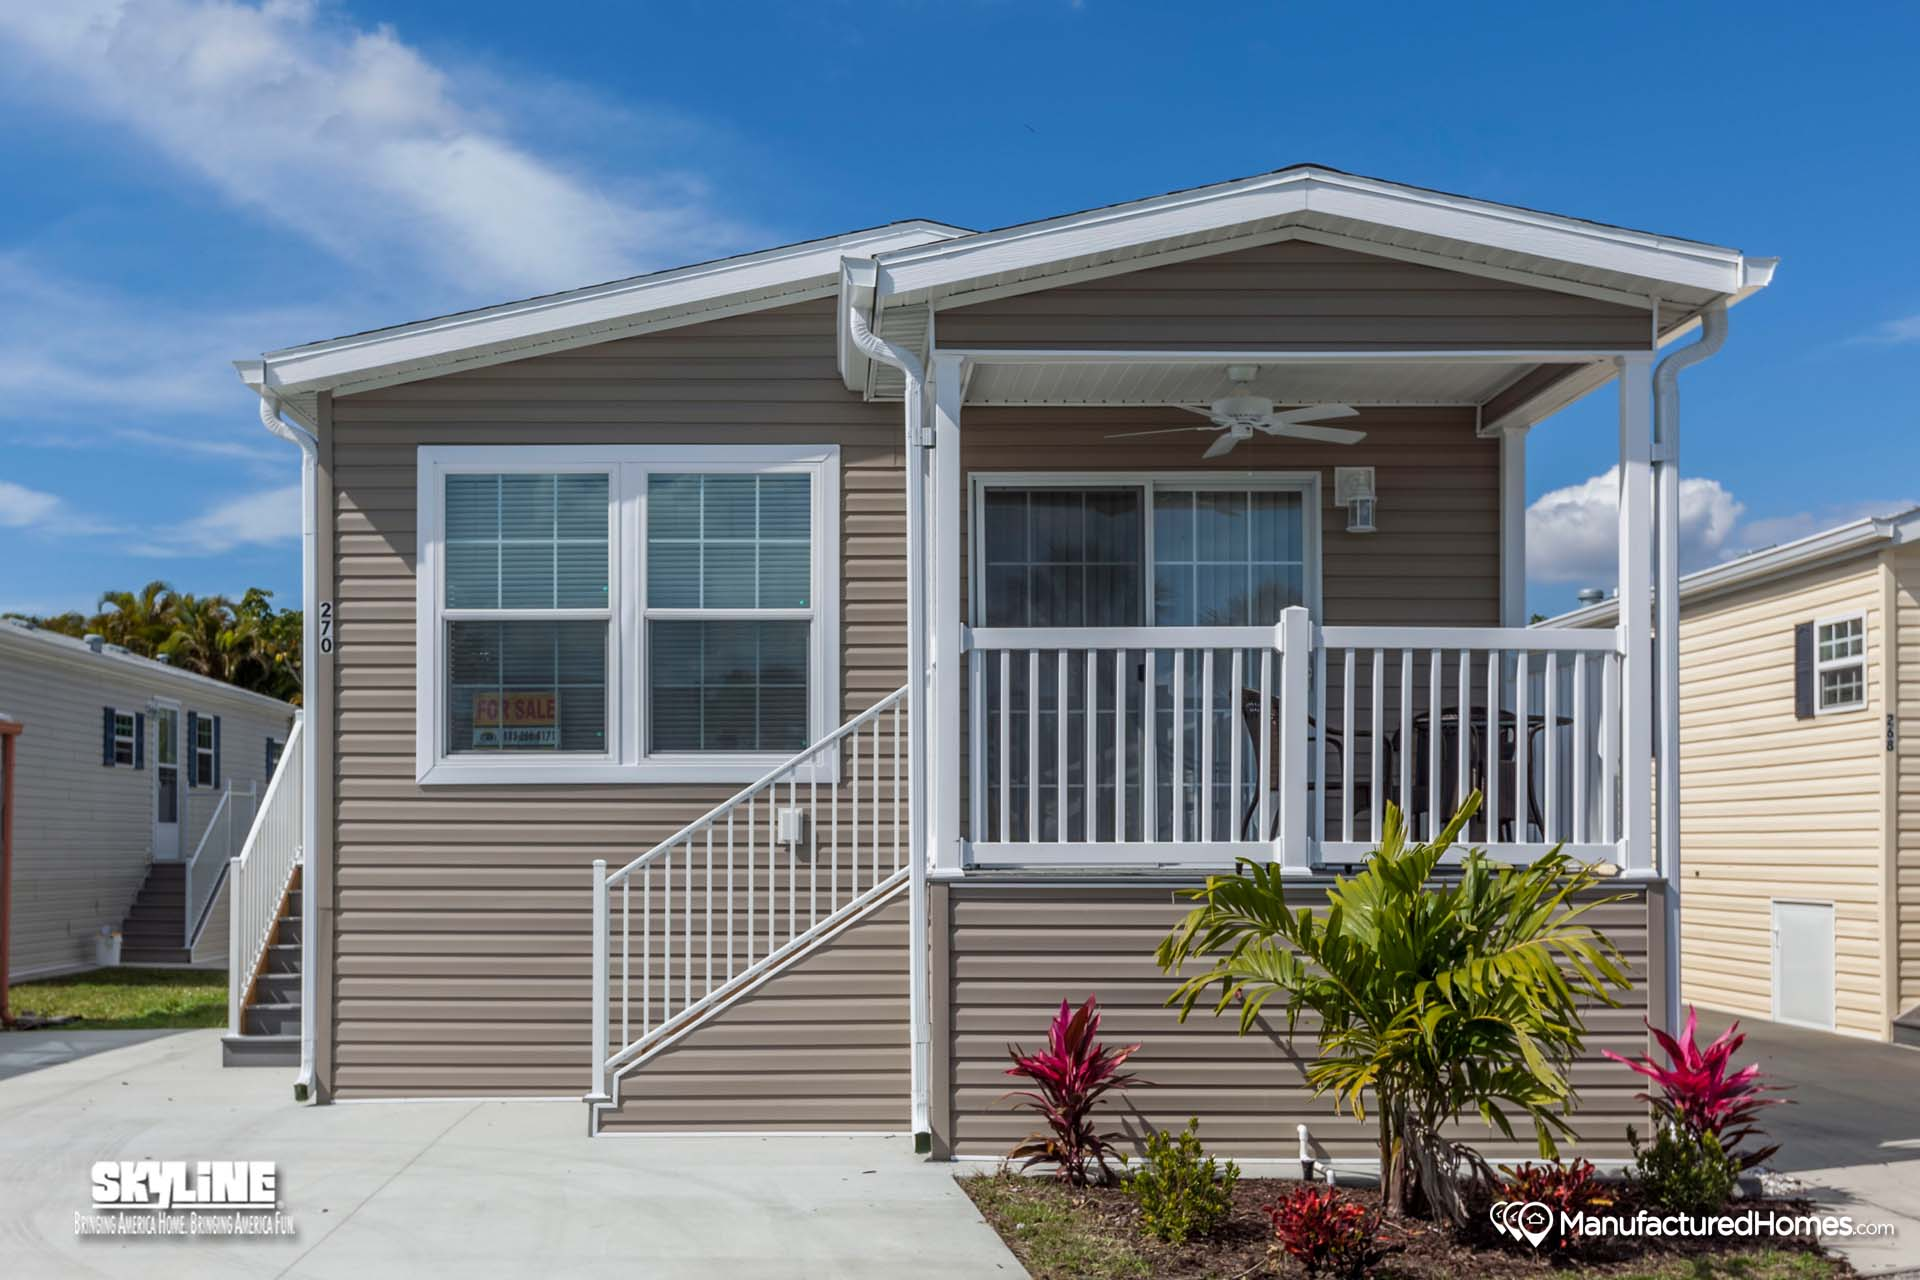 ocala manufactured home dealers with 4301 Ct on 4301 ct moreover Mobile Home Dealer Locations together with Florida Mobile Home Retailers further 6063 besides Mobile Home For Sale.